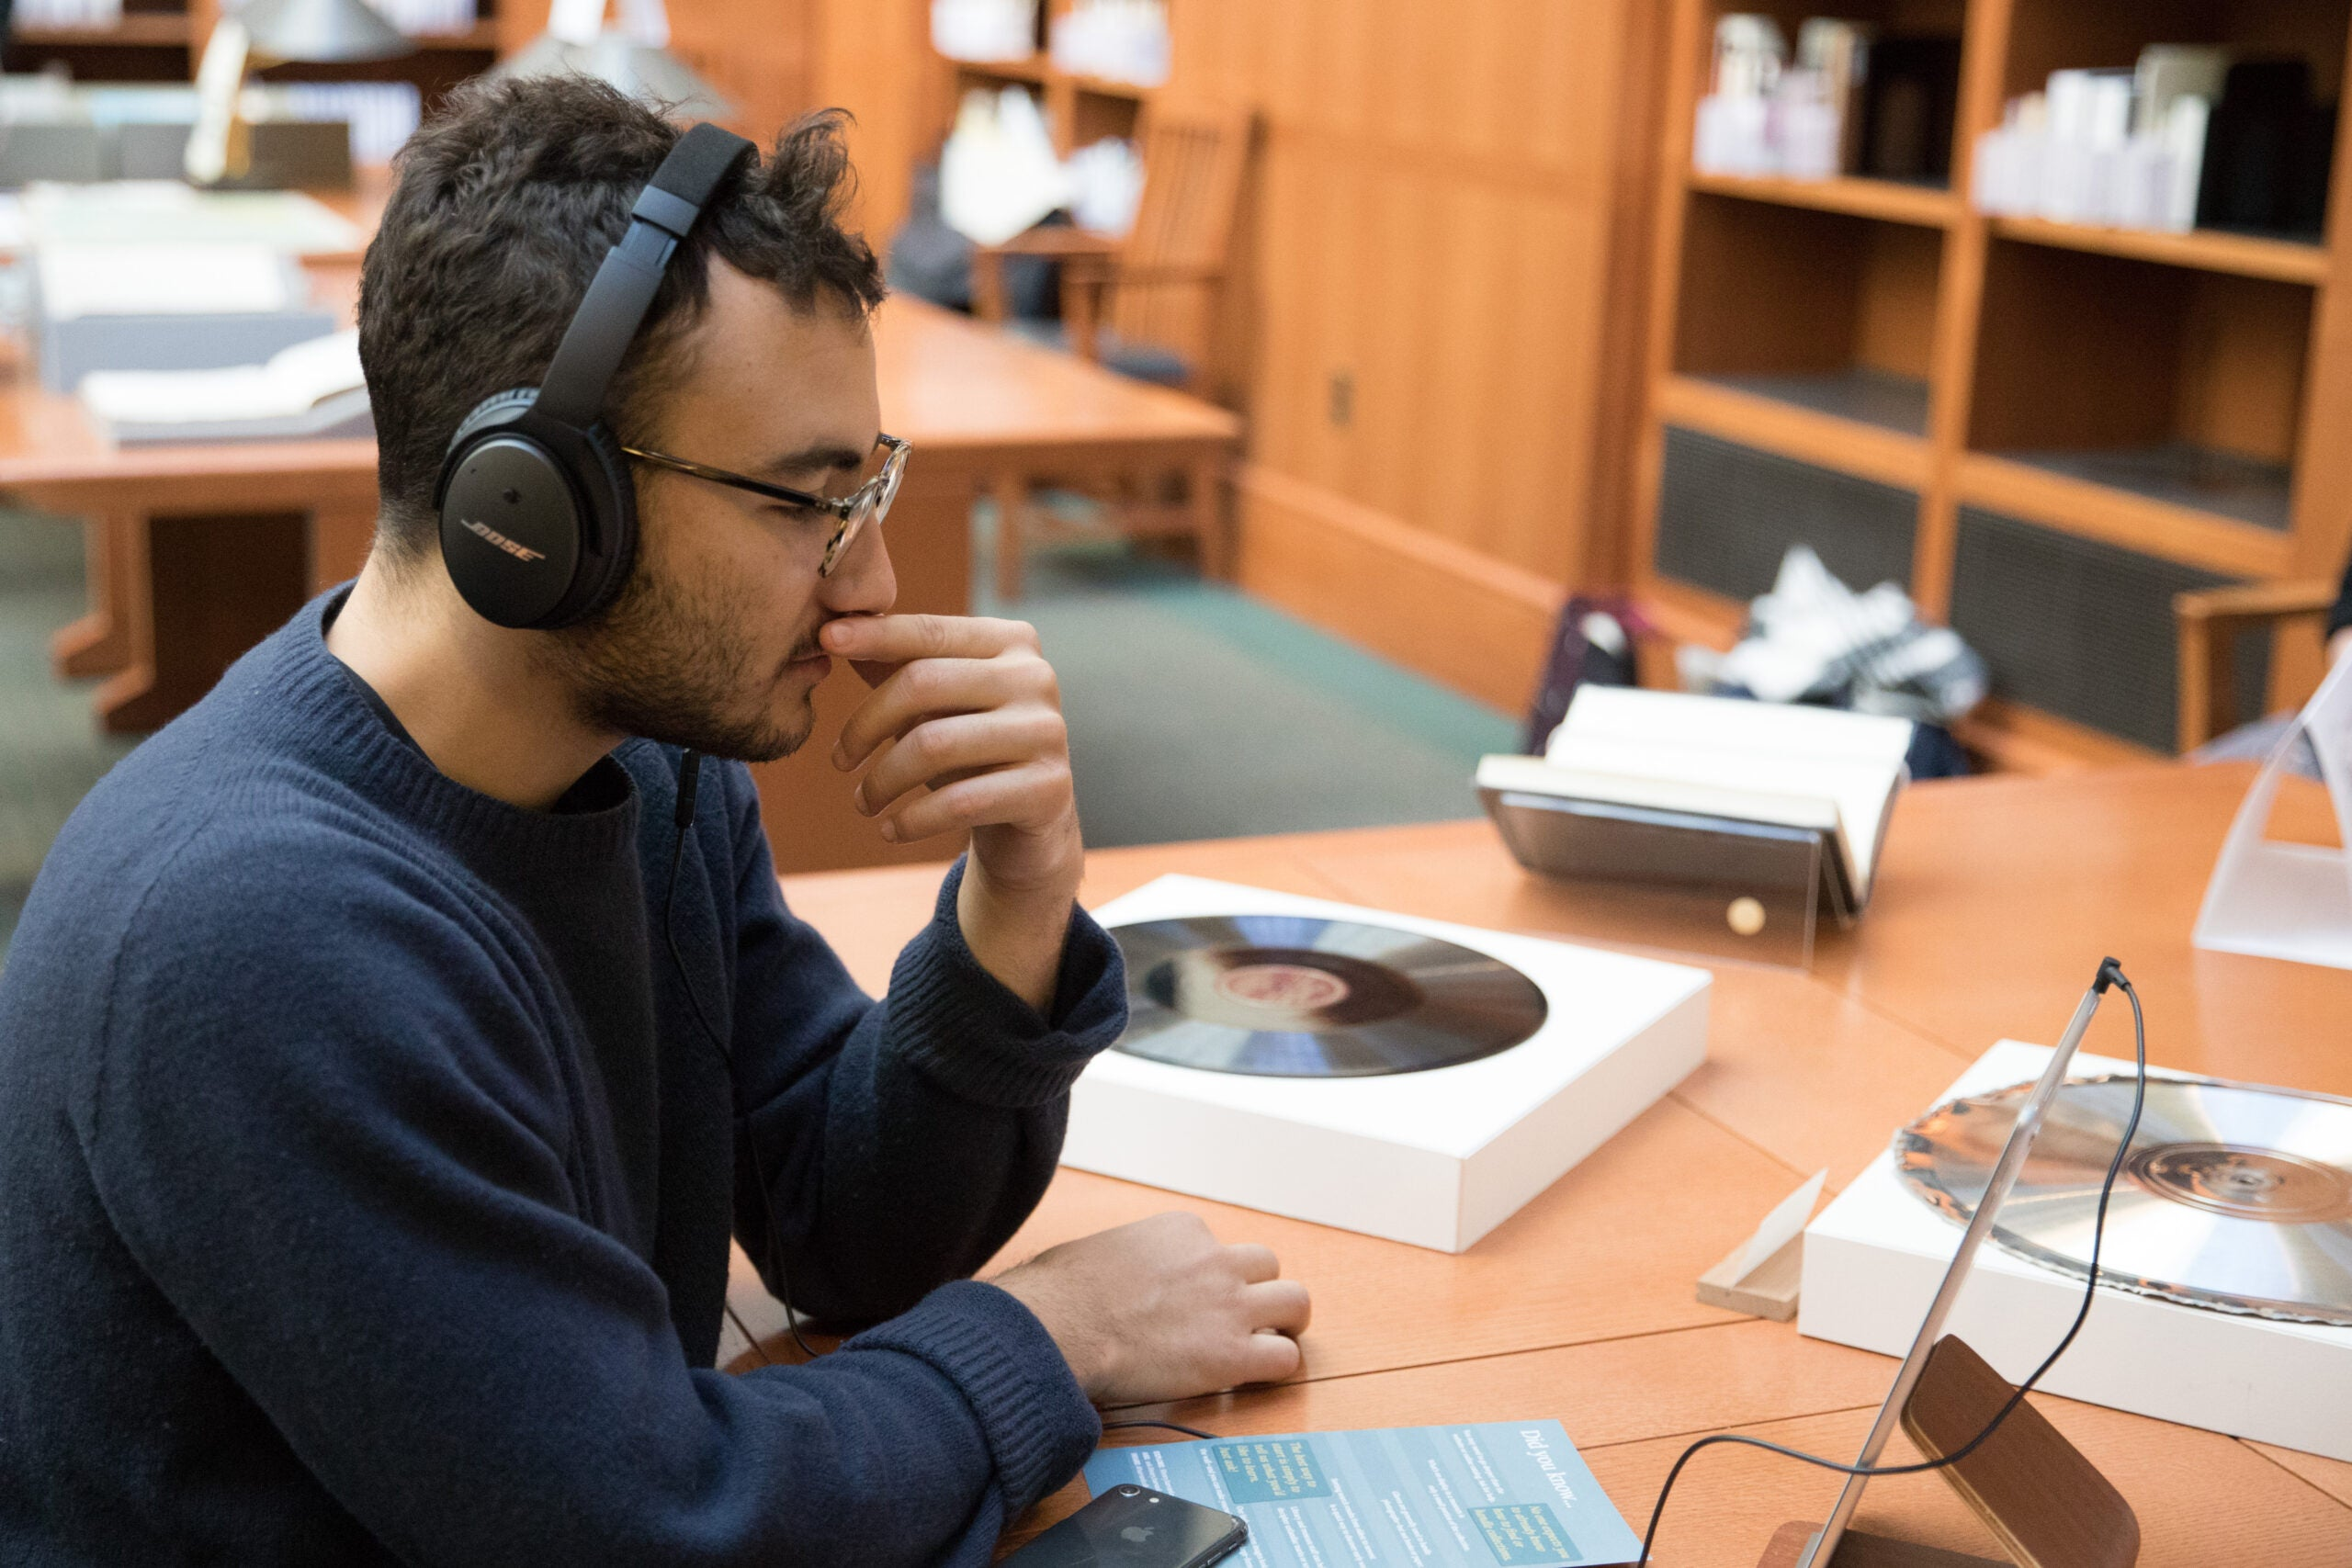 A student wearing headphones with records.